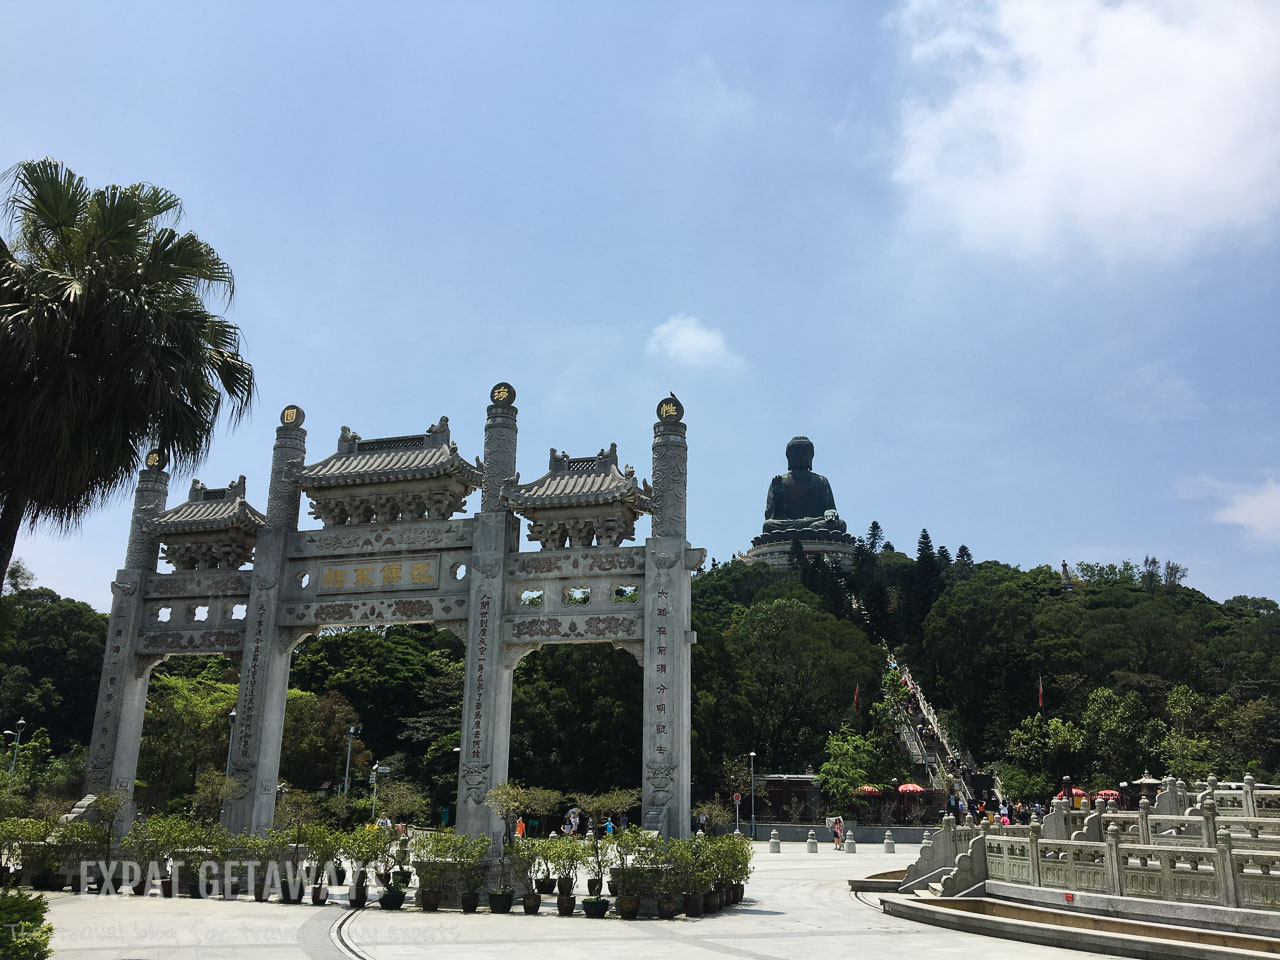 The Tan Tian Big Buddha and nearby Po Lin Monastery are best visited on a clear day in Hong Kong.